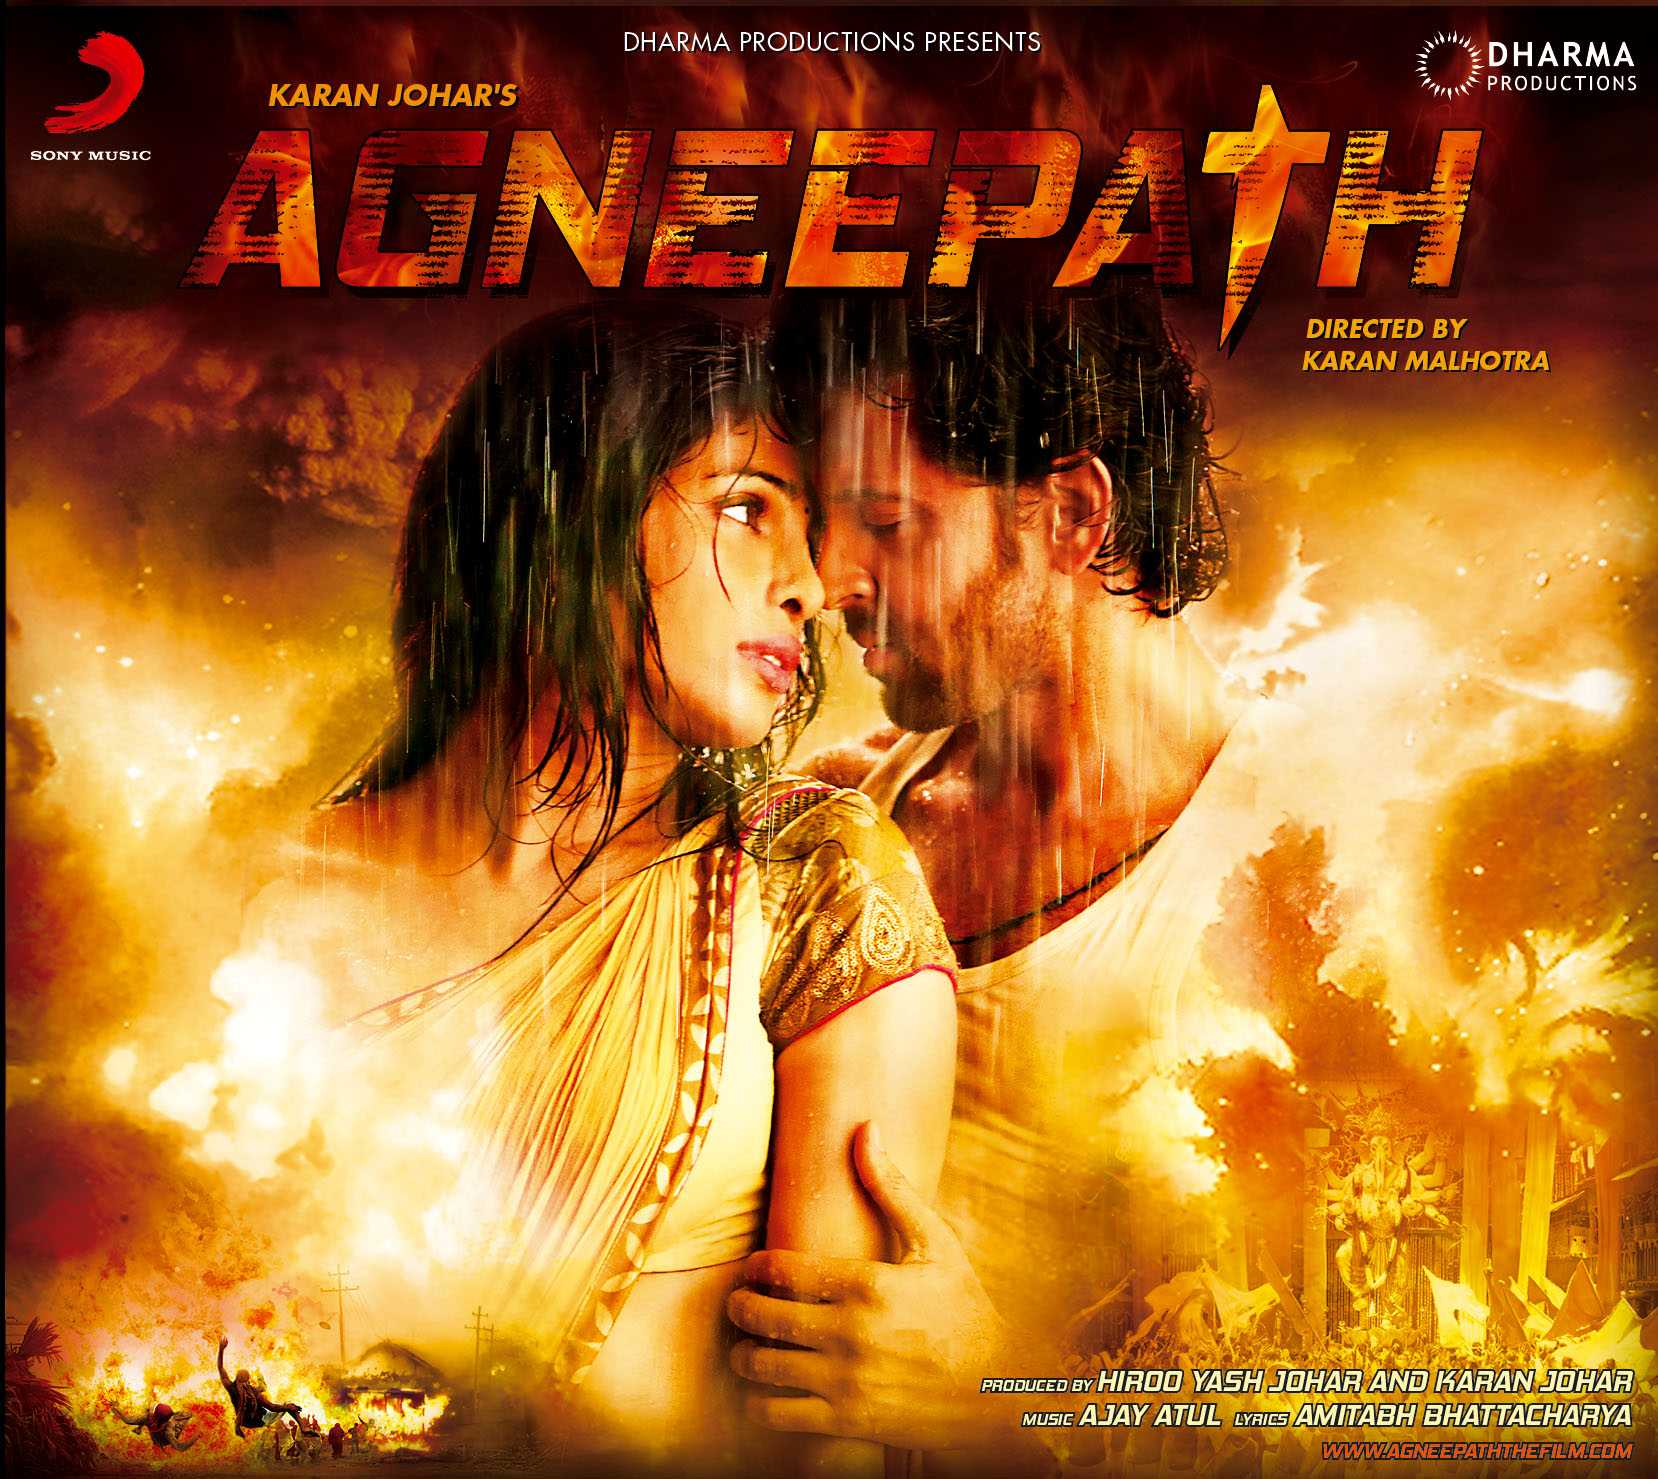 Agneepath Movie Poster - Hrithik Roshan, Priyanka Chopra - HD Wallpaper